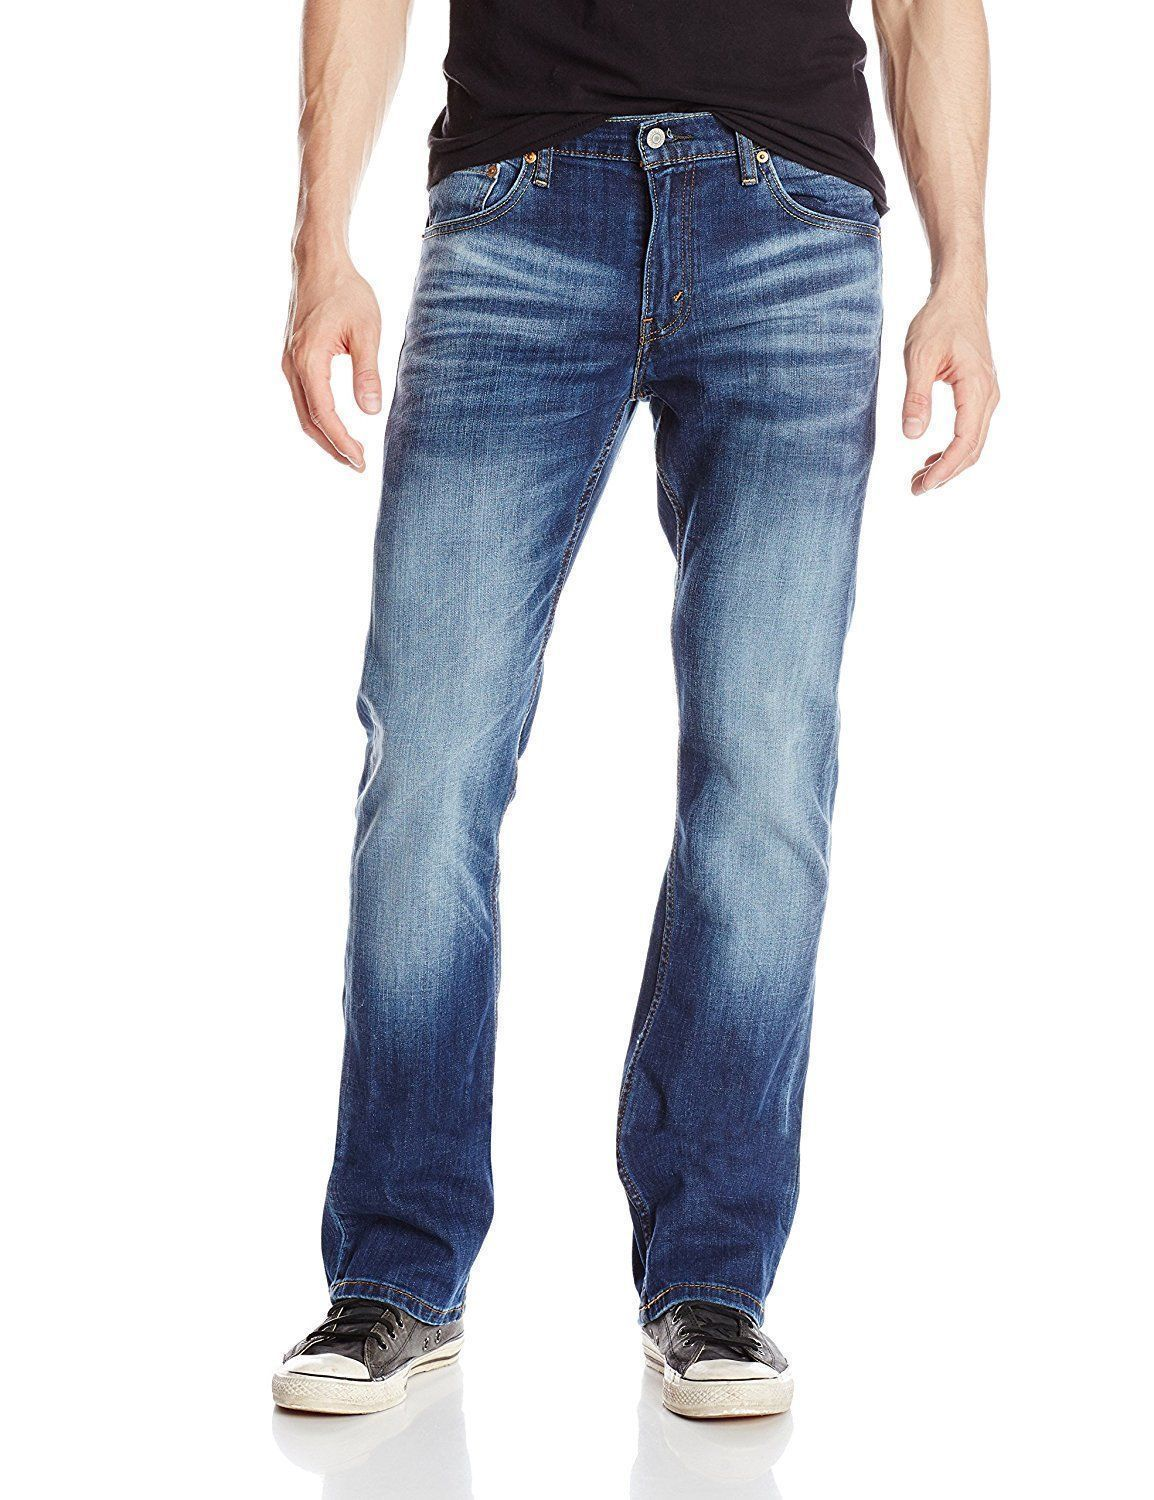 a9d389d8 Levi's Strauss 527 Men's Slim Bootcut Jeans Wave Allusions Stretch 527-0489  $44.99 End Date